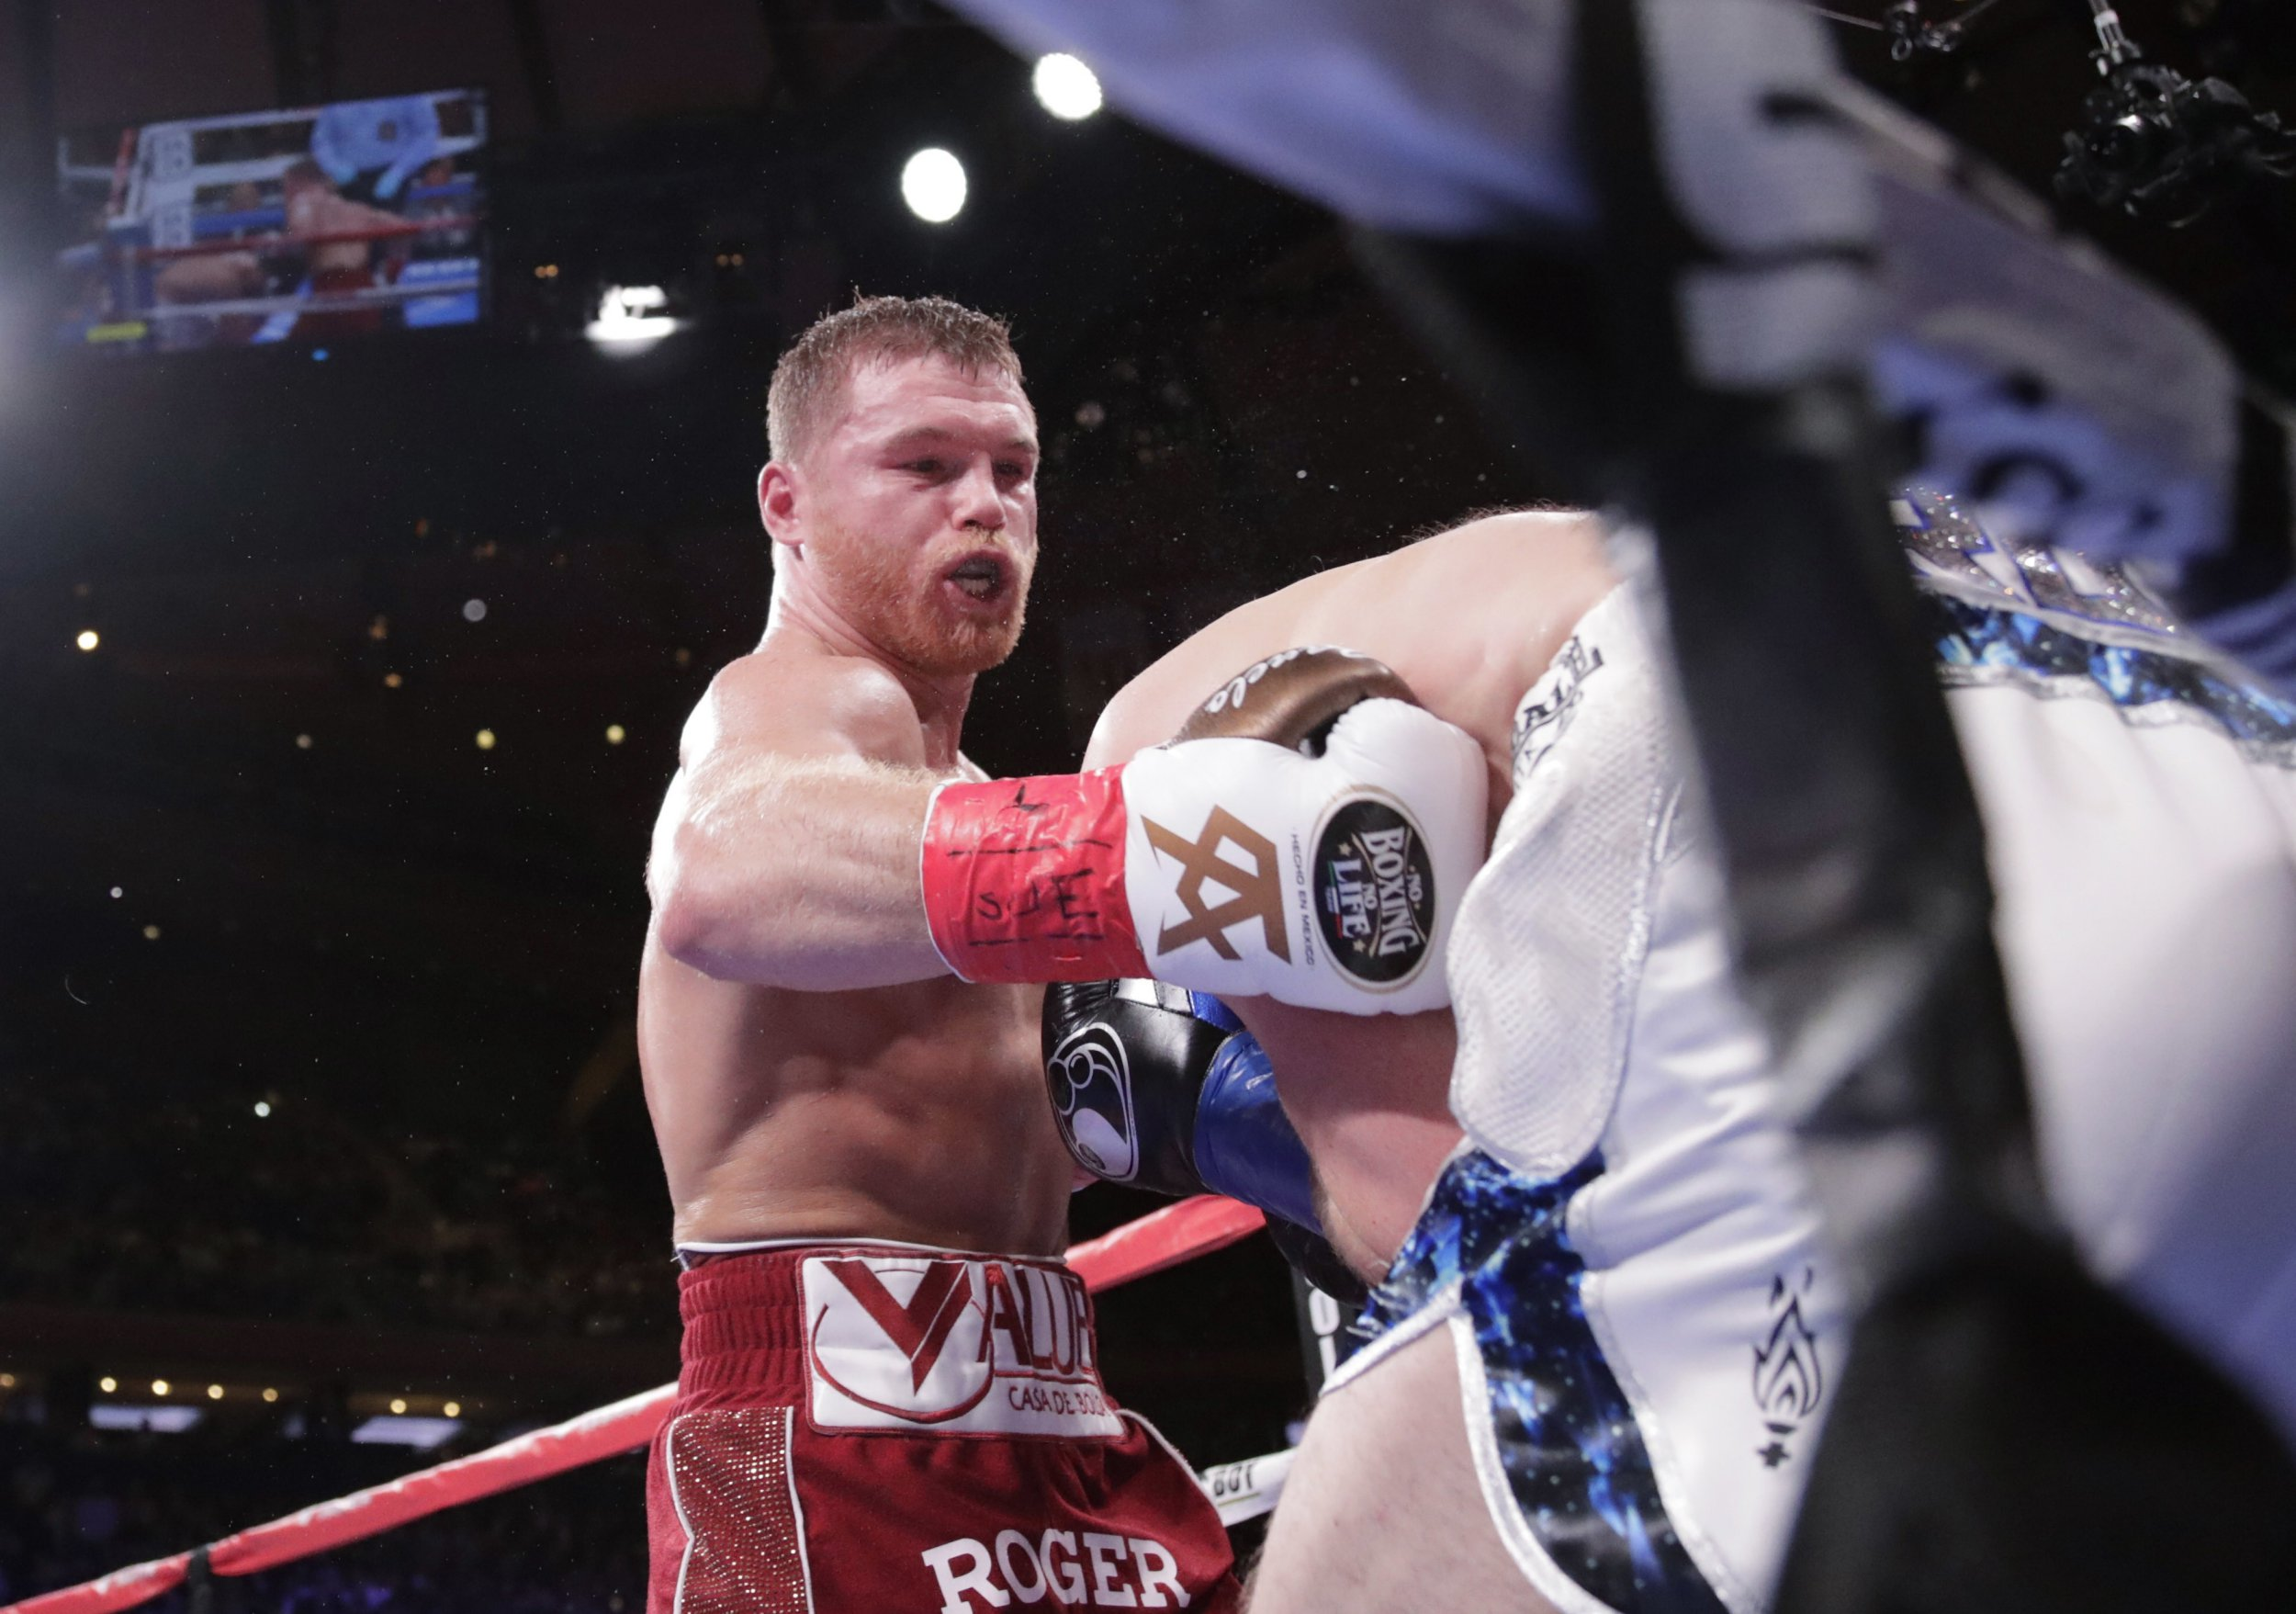 Mexico's Canelo Alvarez, left, punches England's Rocky Fielding during the third round of a WBA super middleweight championship boxing match Saturday, Dec. 15, 2018, in New York. Alvarez stopped Fielding in the third round. (AP Photo/Frank Franklin II)